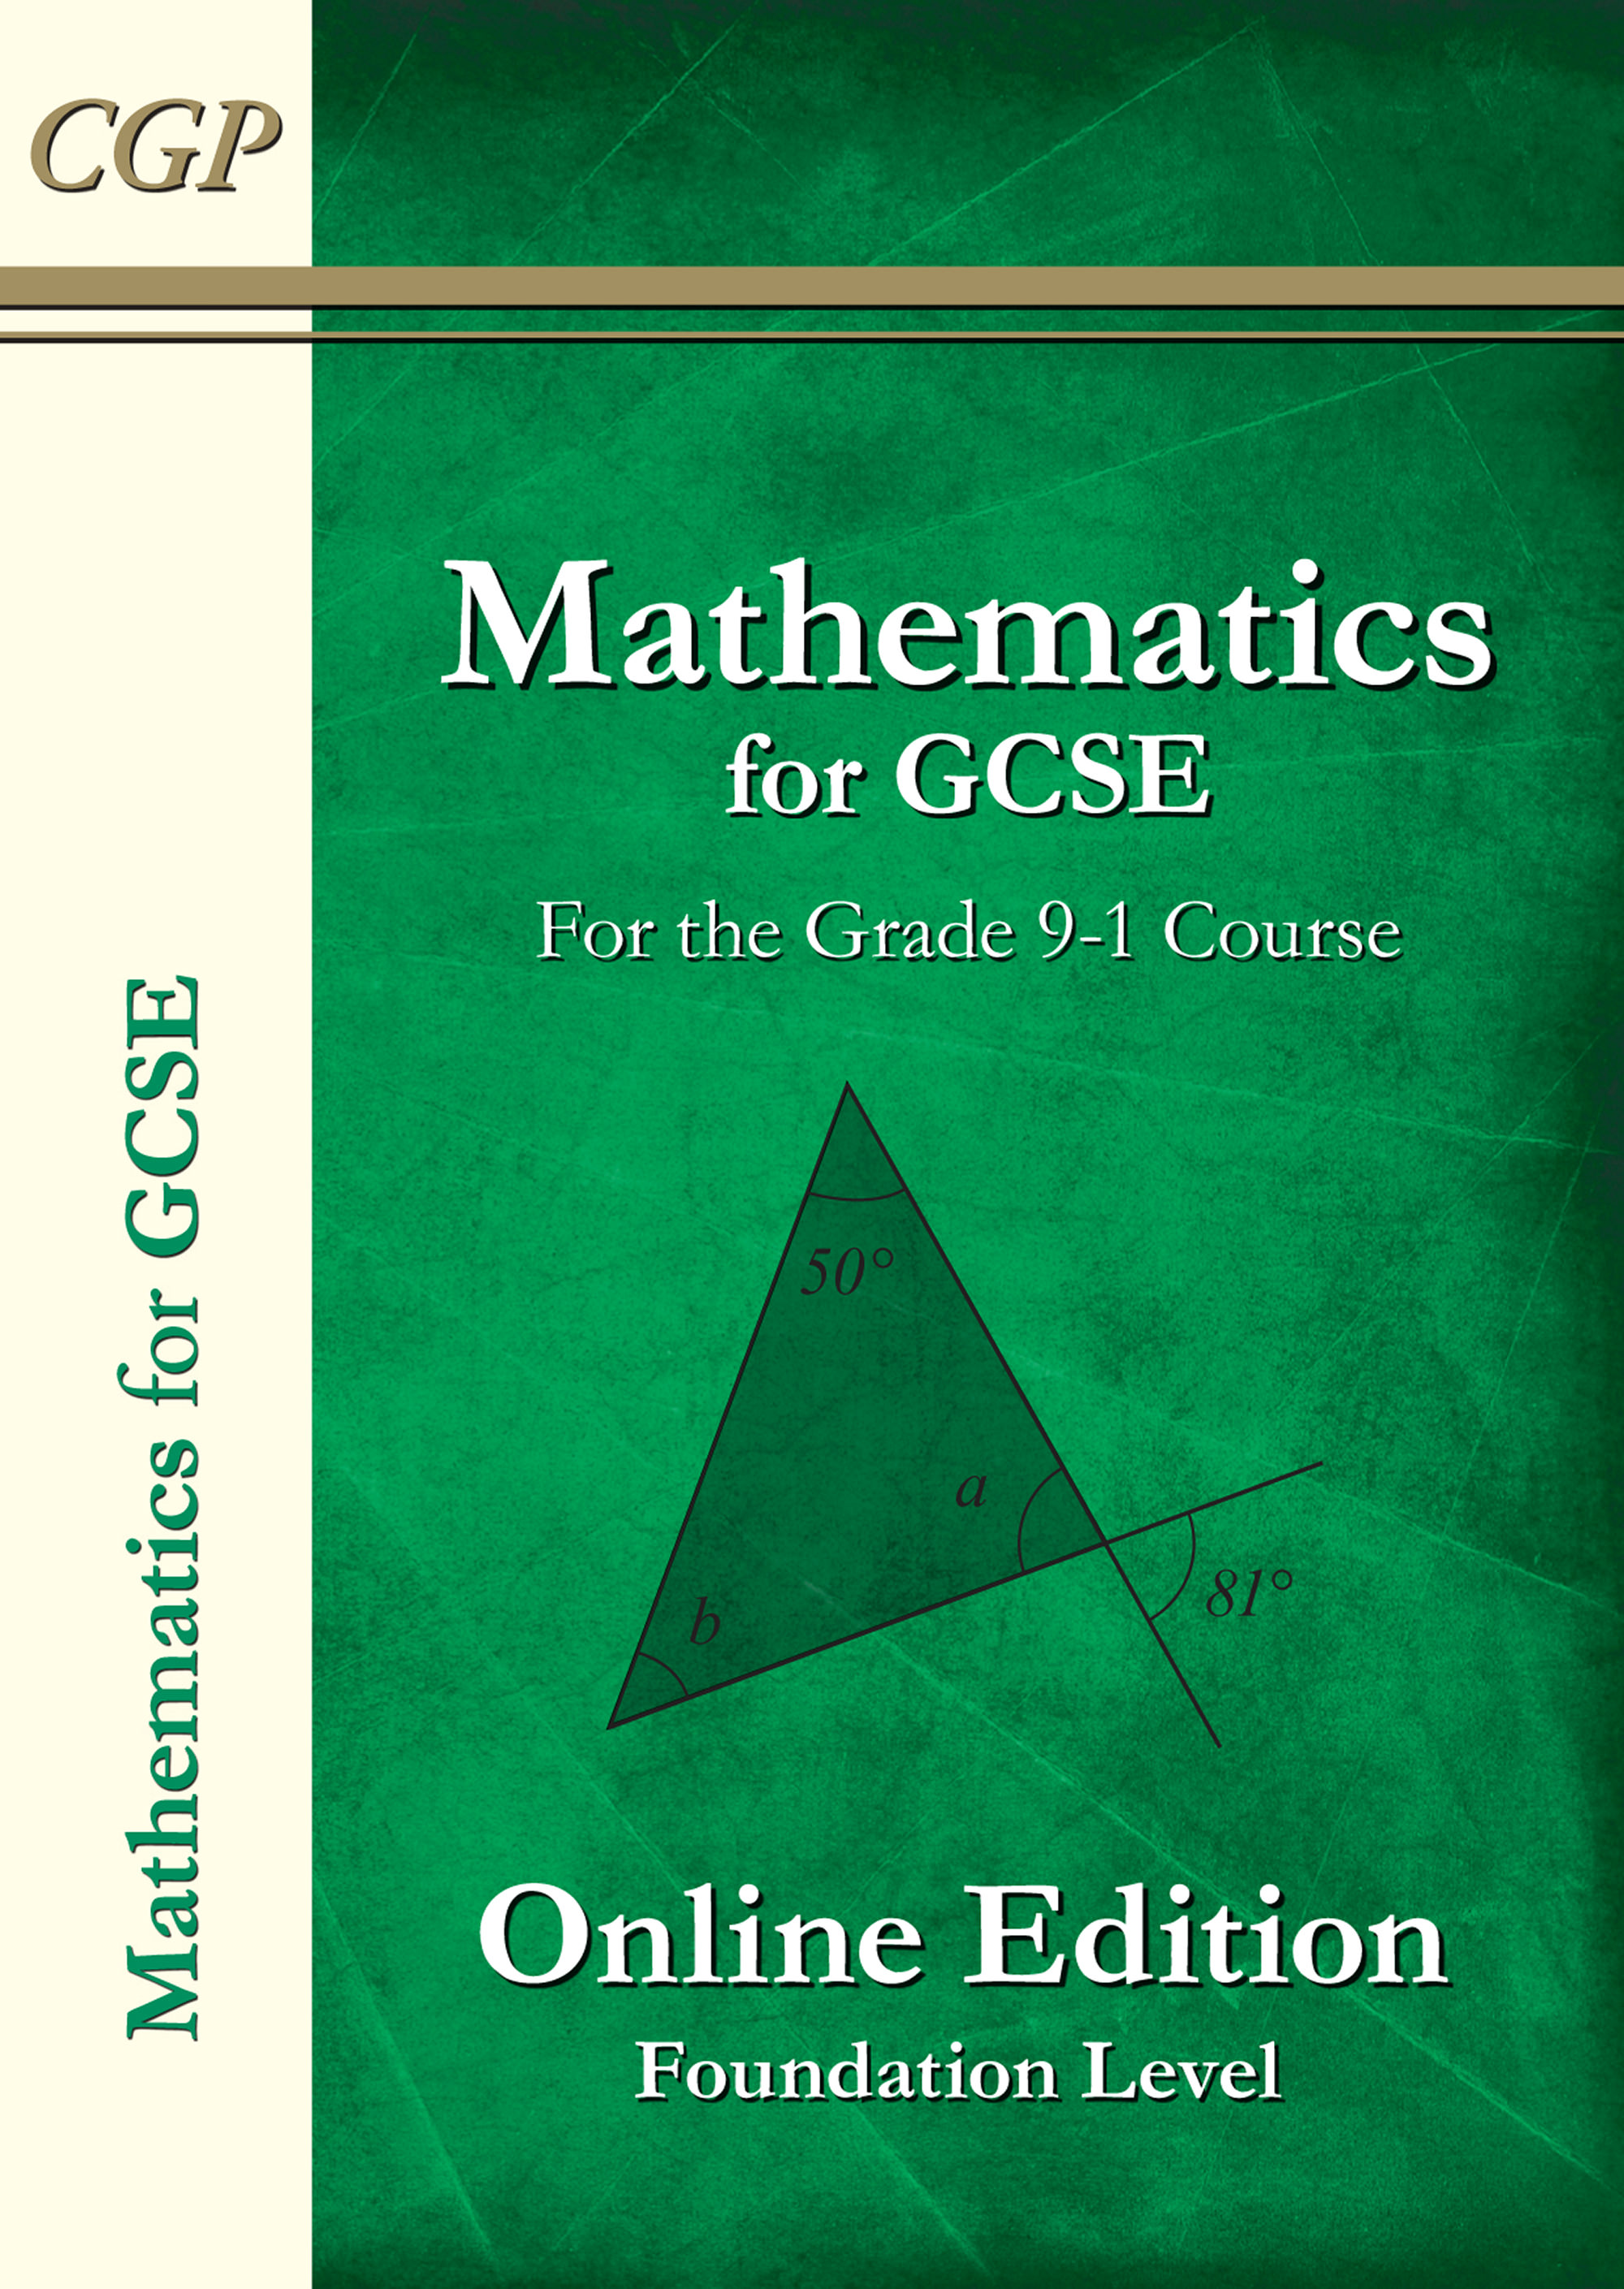 MFN42G - New Maths for GCSE Textbook: Online Edition with answers - Foundation (for the Grade 9-1 Co